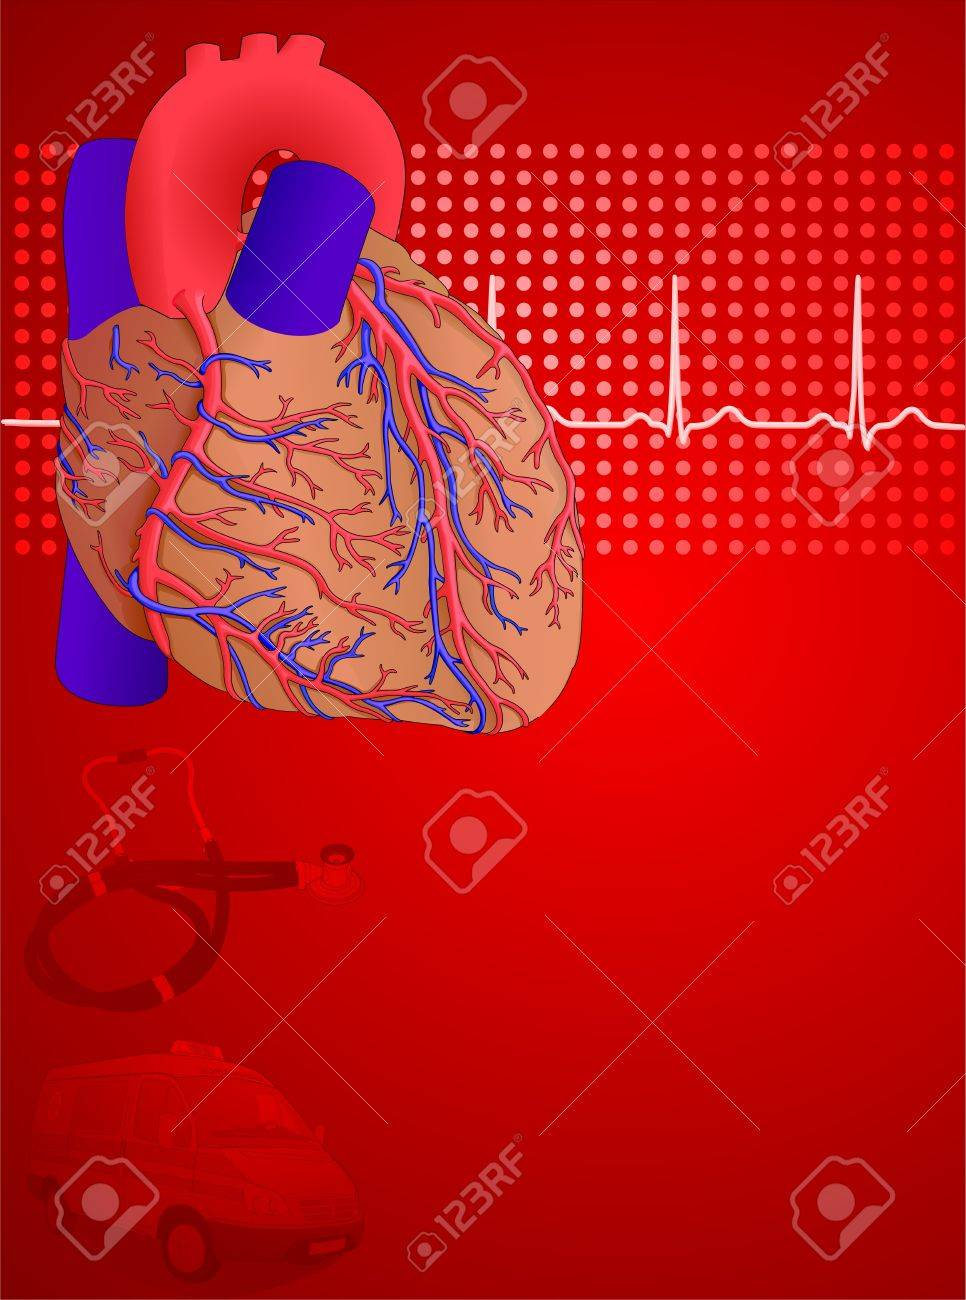 Human Heart Anatomy And Physiology Red Background , Illustration ...